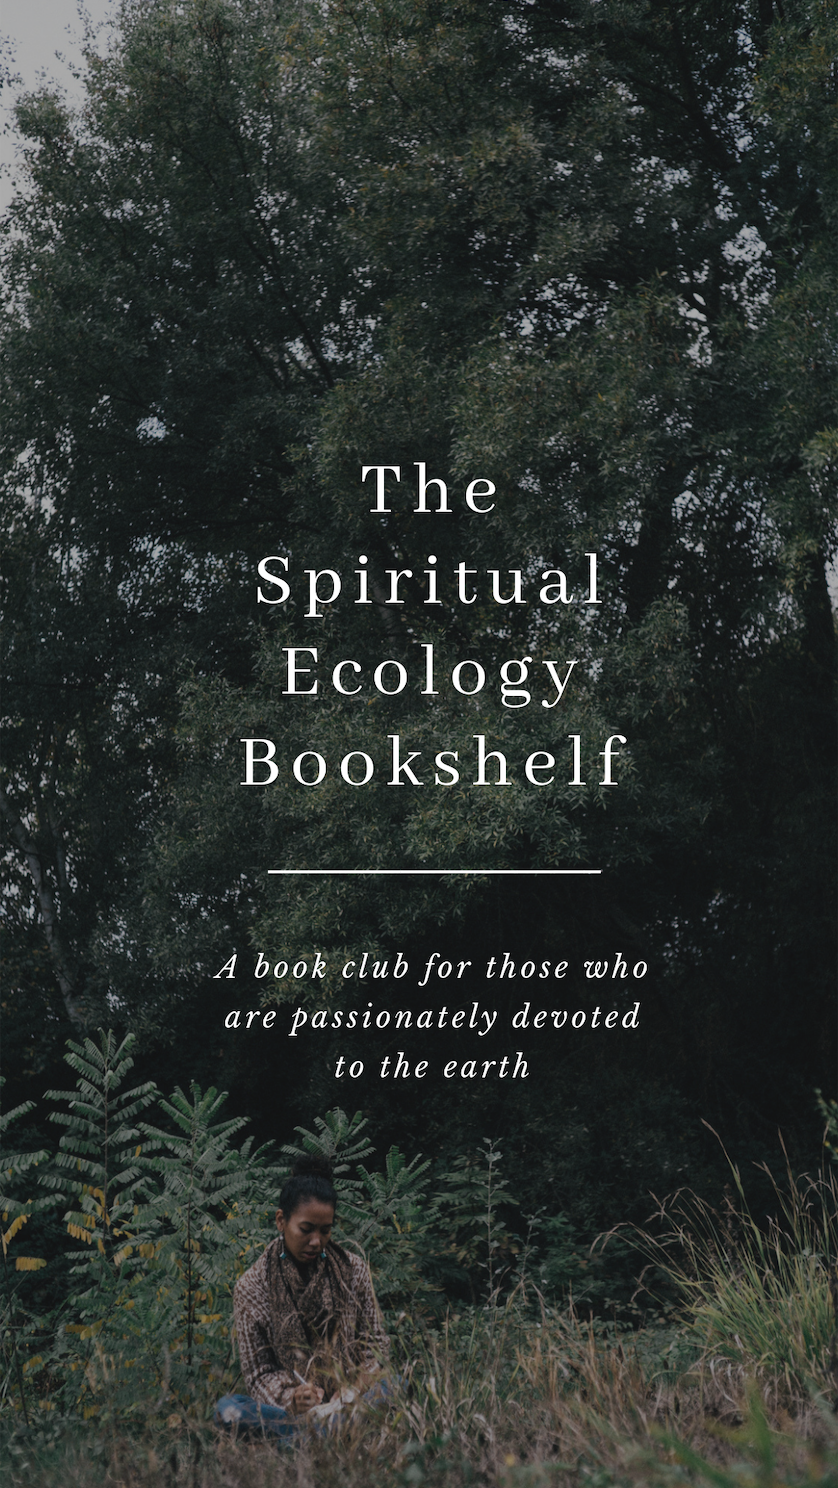 Welcome to the Spiritual Ecology Book Shelf! - This book club has been in the making for the last two years, and I am so excited that it is finally coming into fruition! Thank you for answering the call and being interested in reading alongside me in the quiet yet blossoming field of Spiritual Ecology. Together we will be diving into the works of authors who are weaving together stories of spirit and nature, and exploring through group dialogue and writing what makes us feel connected to the earth, ourselves and our communities. Below is some information and details on how to participate! I look forward to connecting more through the coming months.